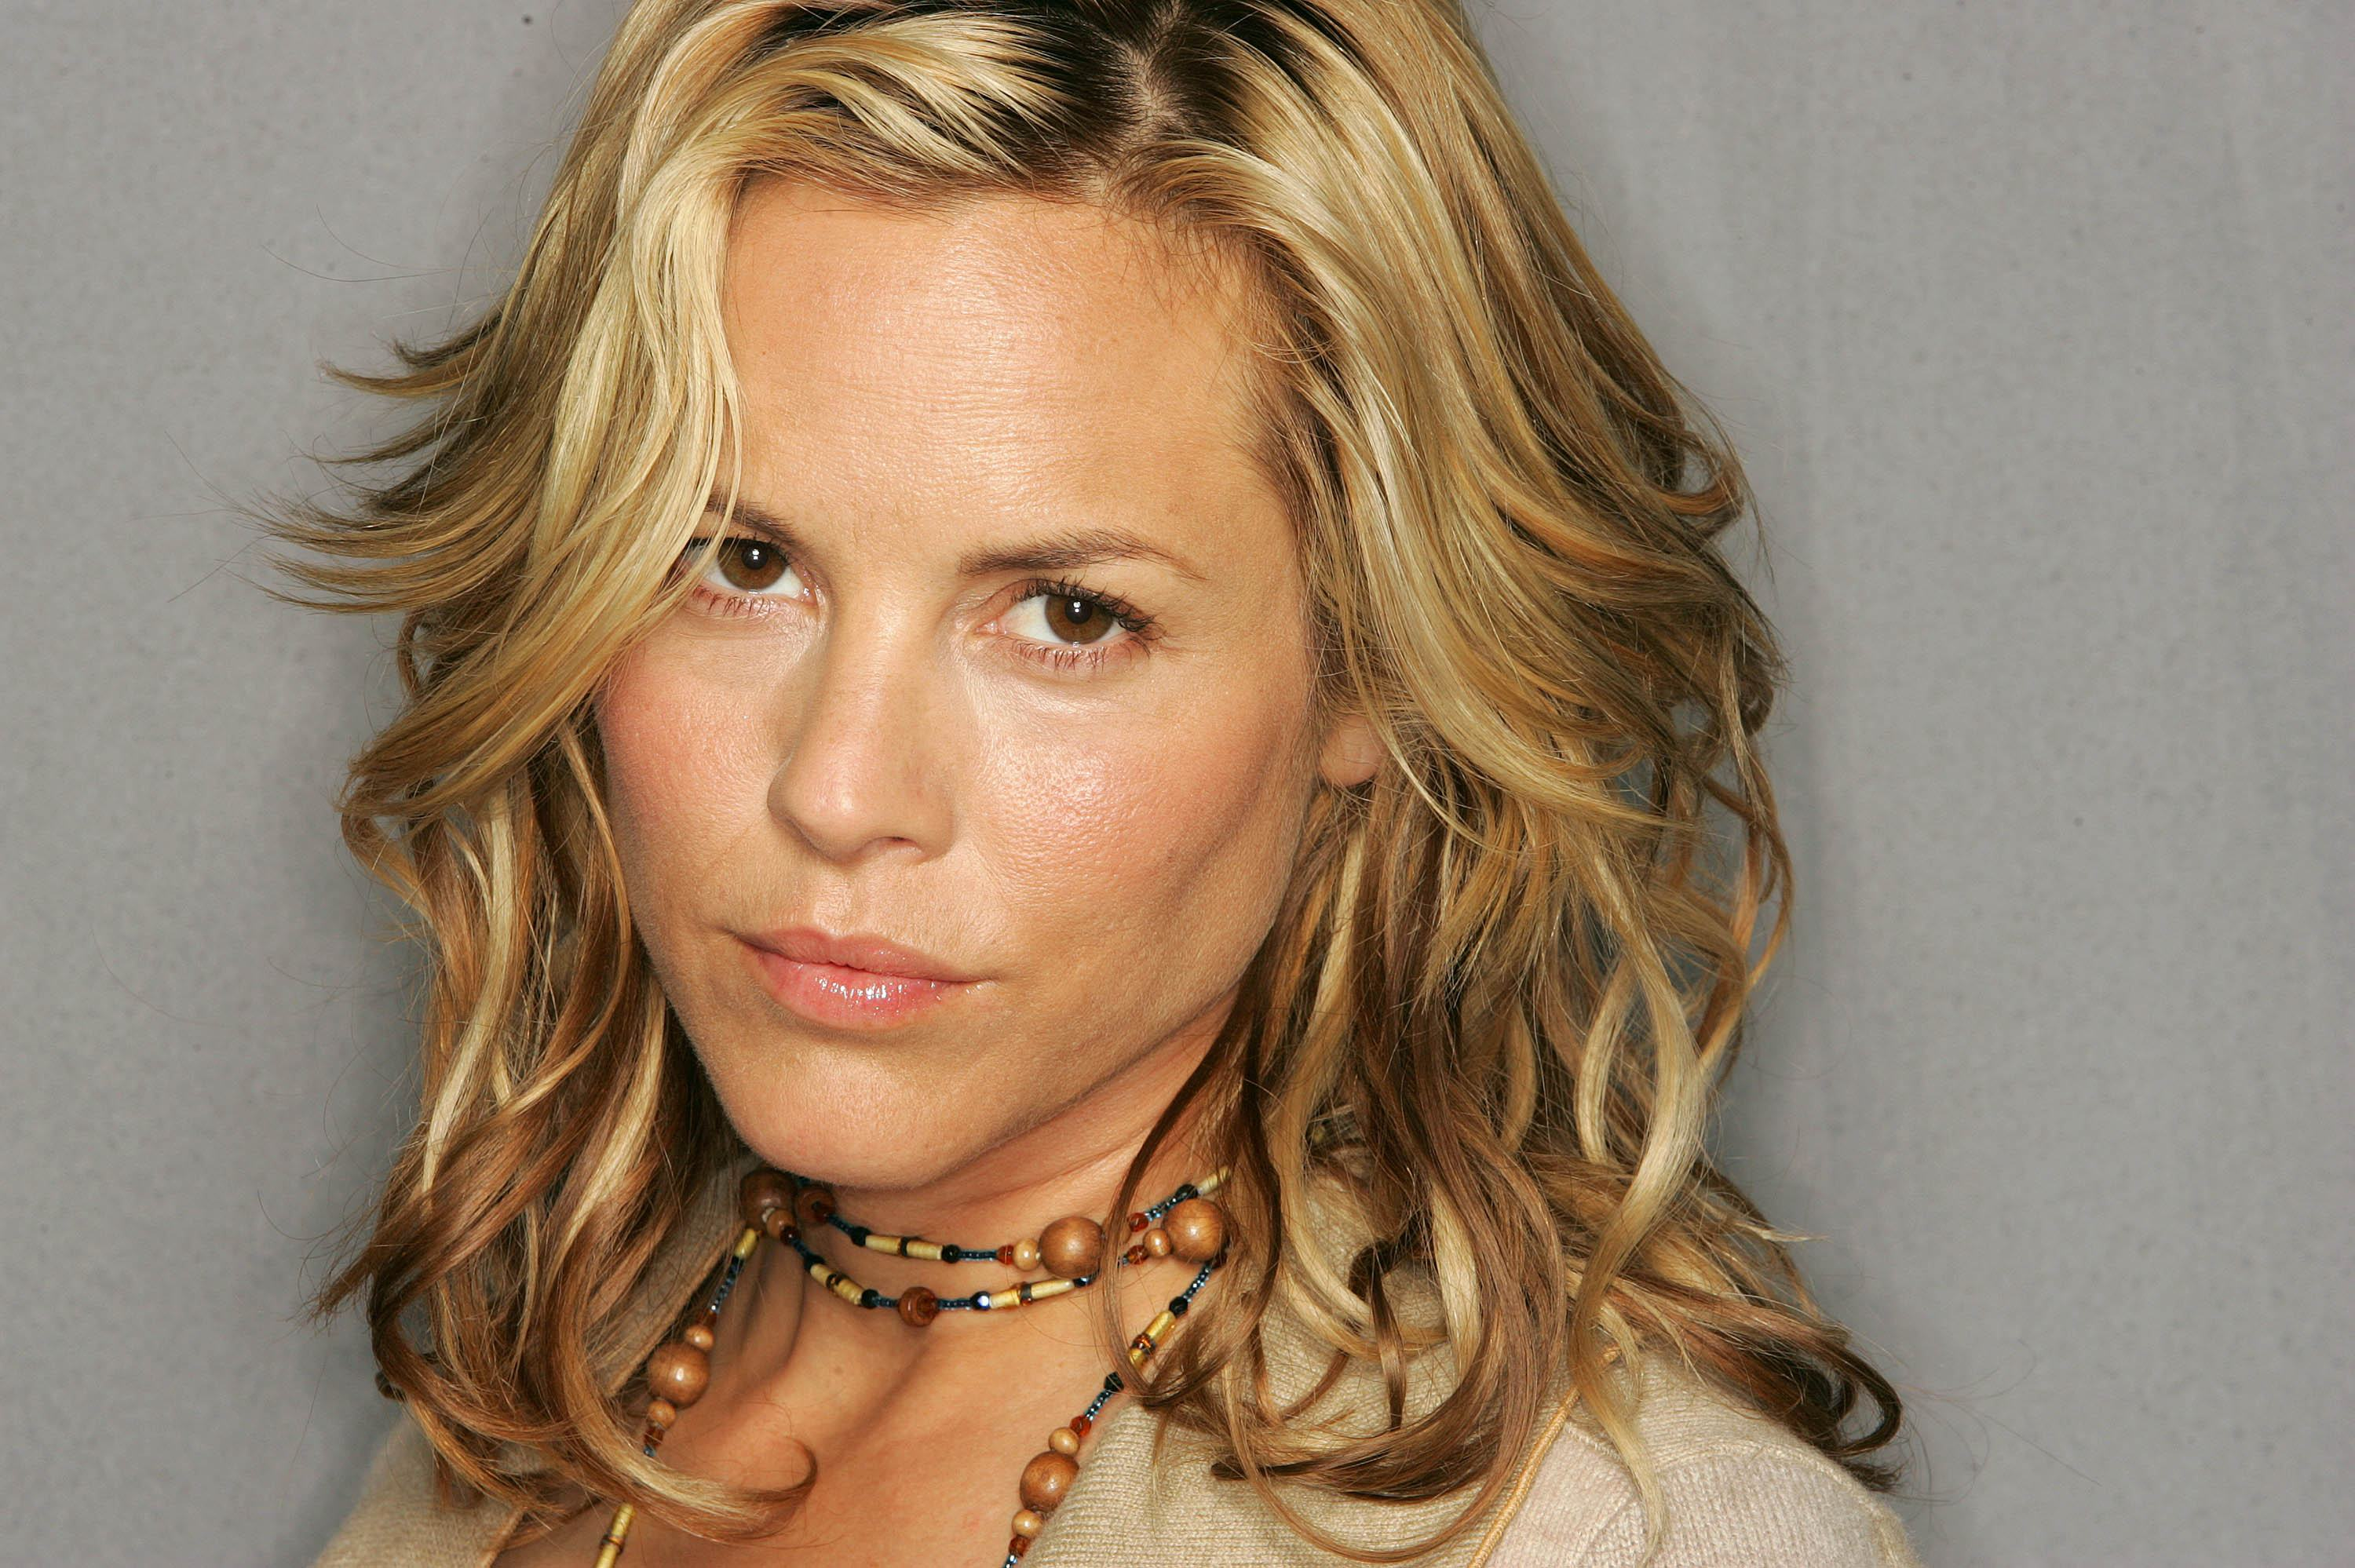 Maria Bello Maria Bello photo gallery 148 high quality pics of Maria